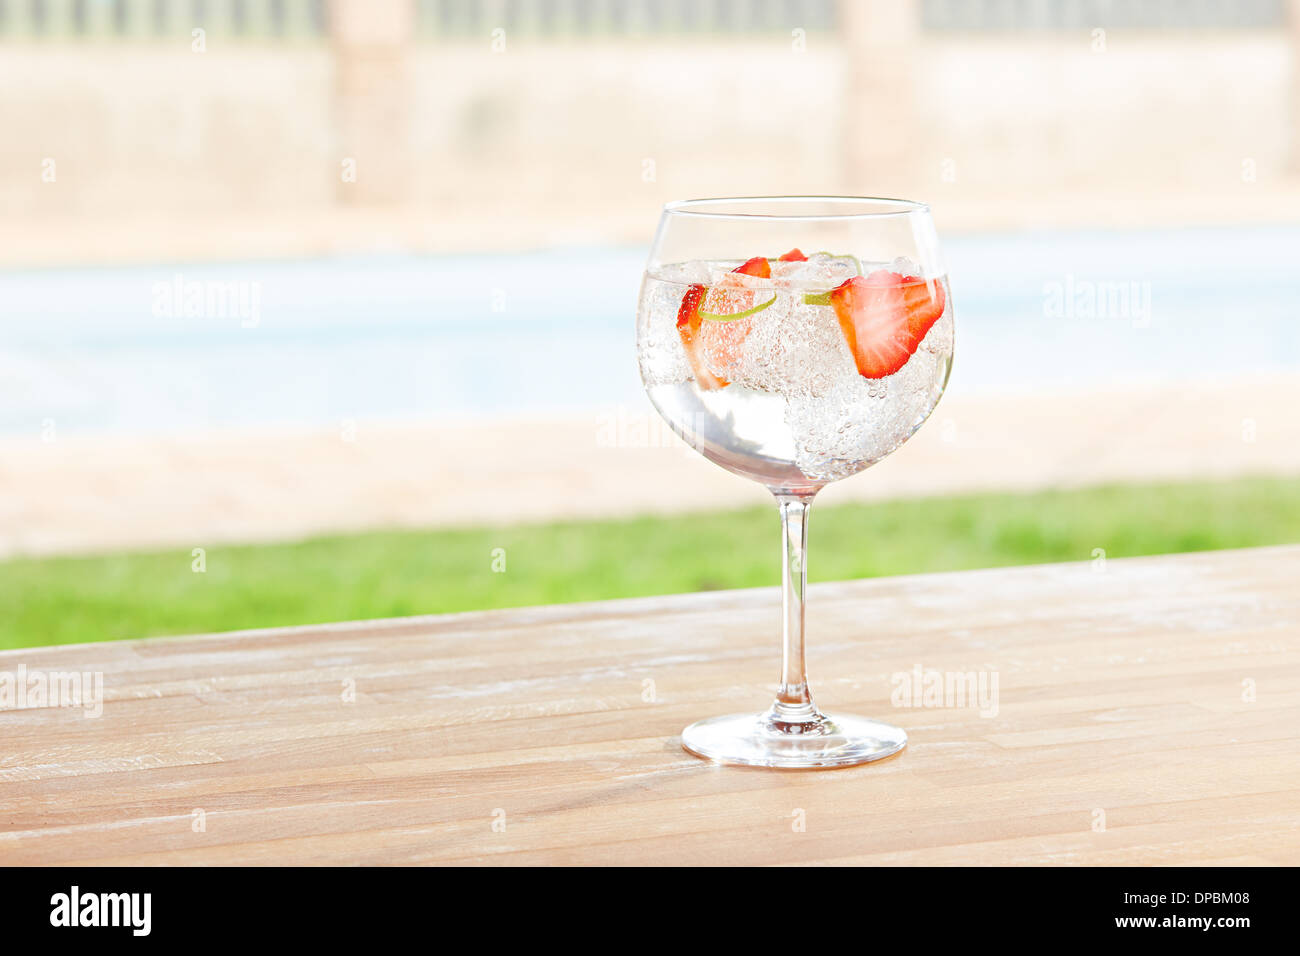 Strawberry gin and tonic cocktail on poolside bar - Stock Image